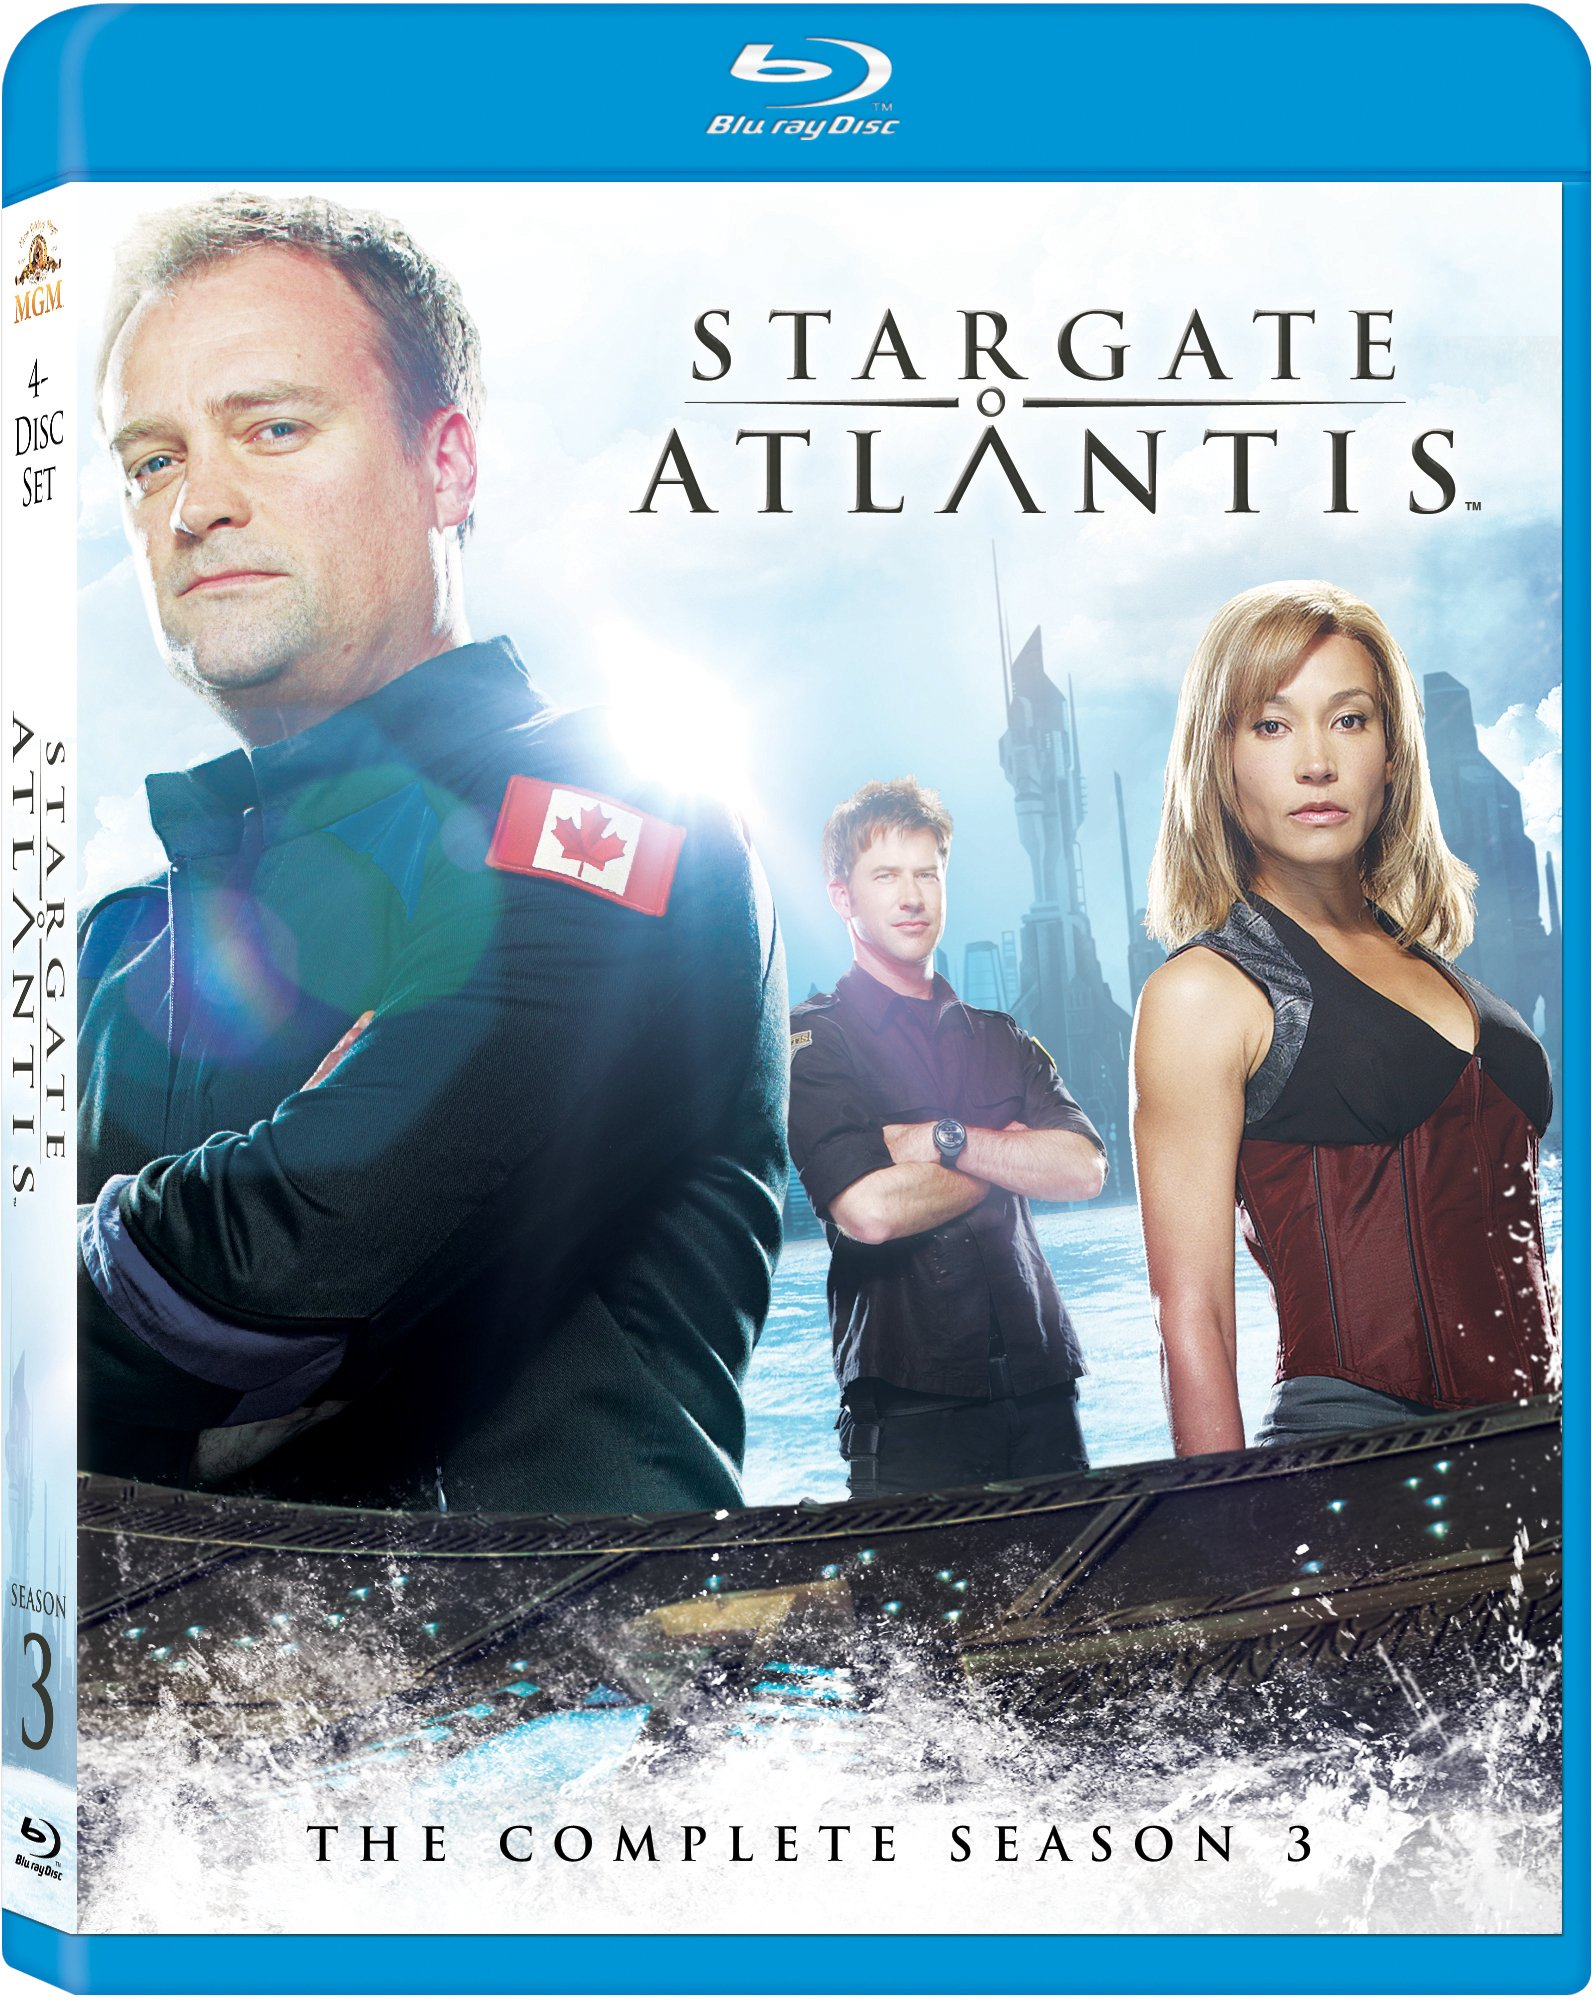 Stargate Atlantis: Season 3 [Blu-ray] by MGM (Video & DVD)